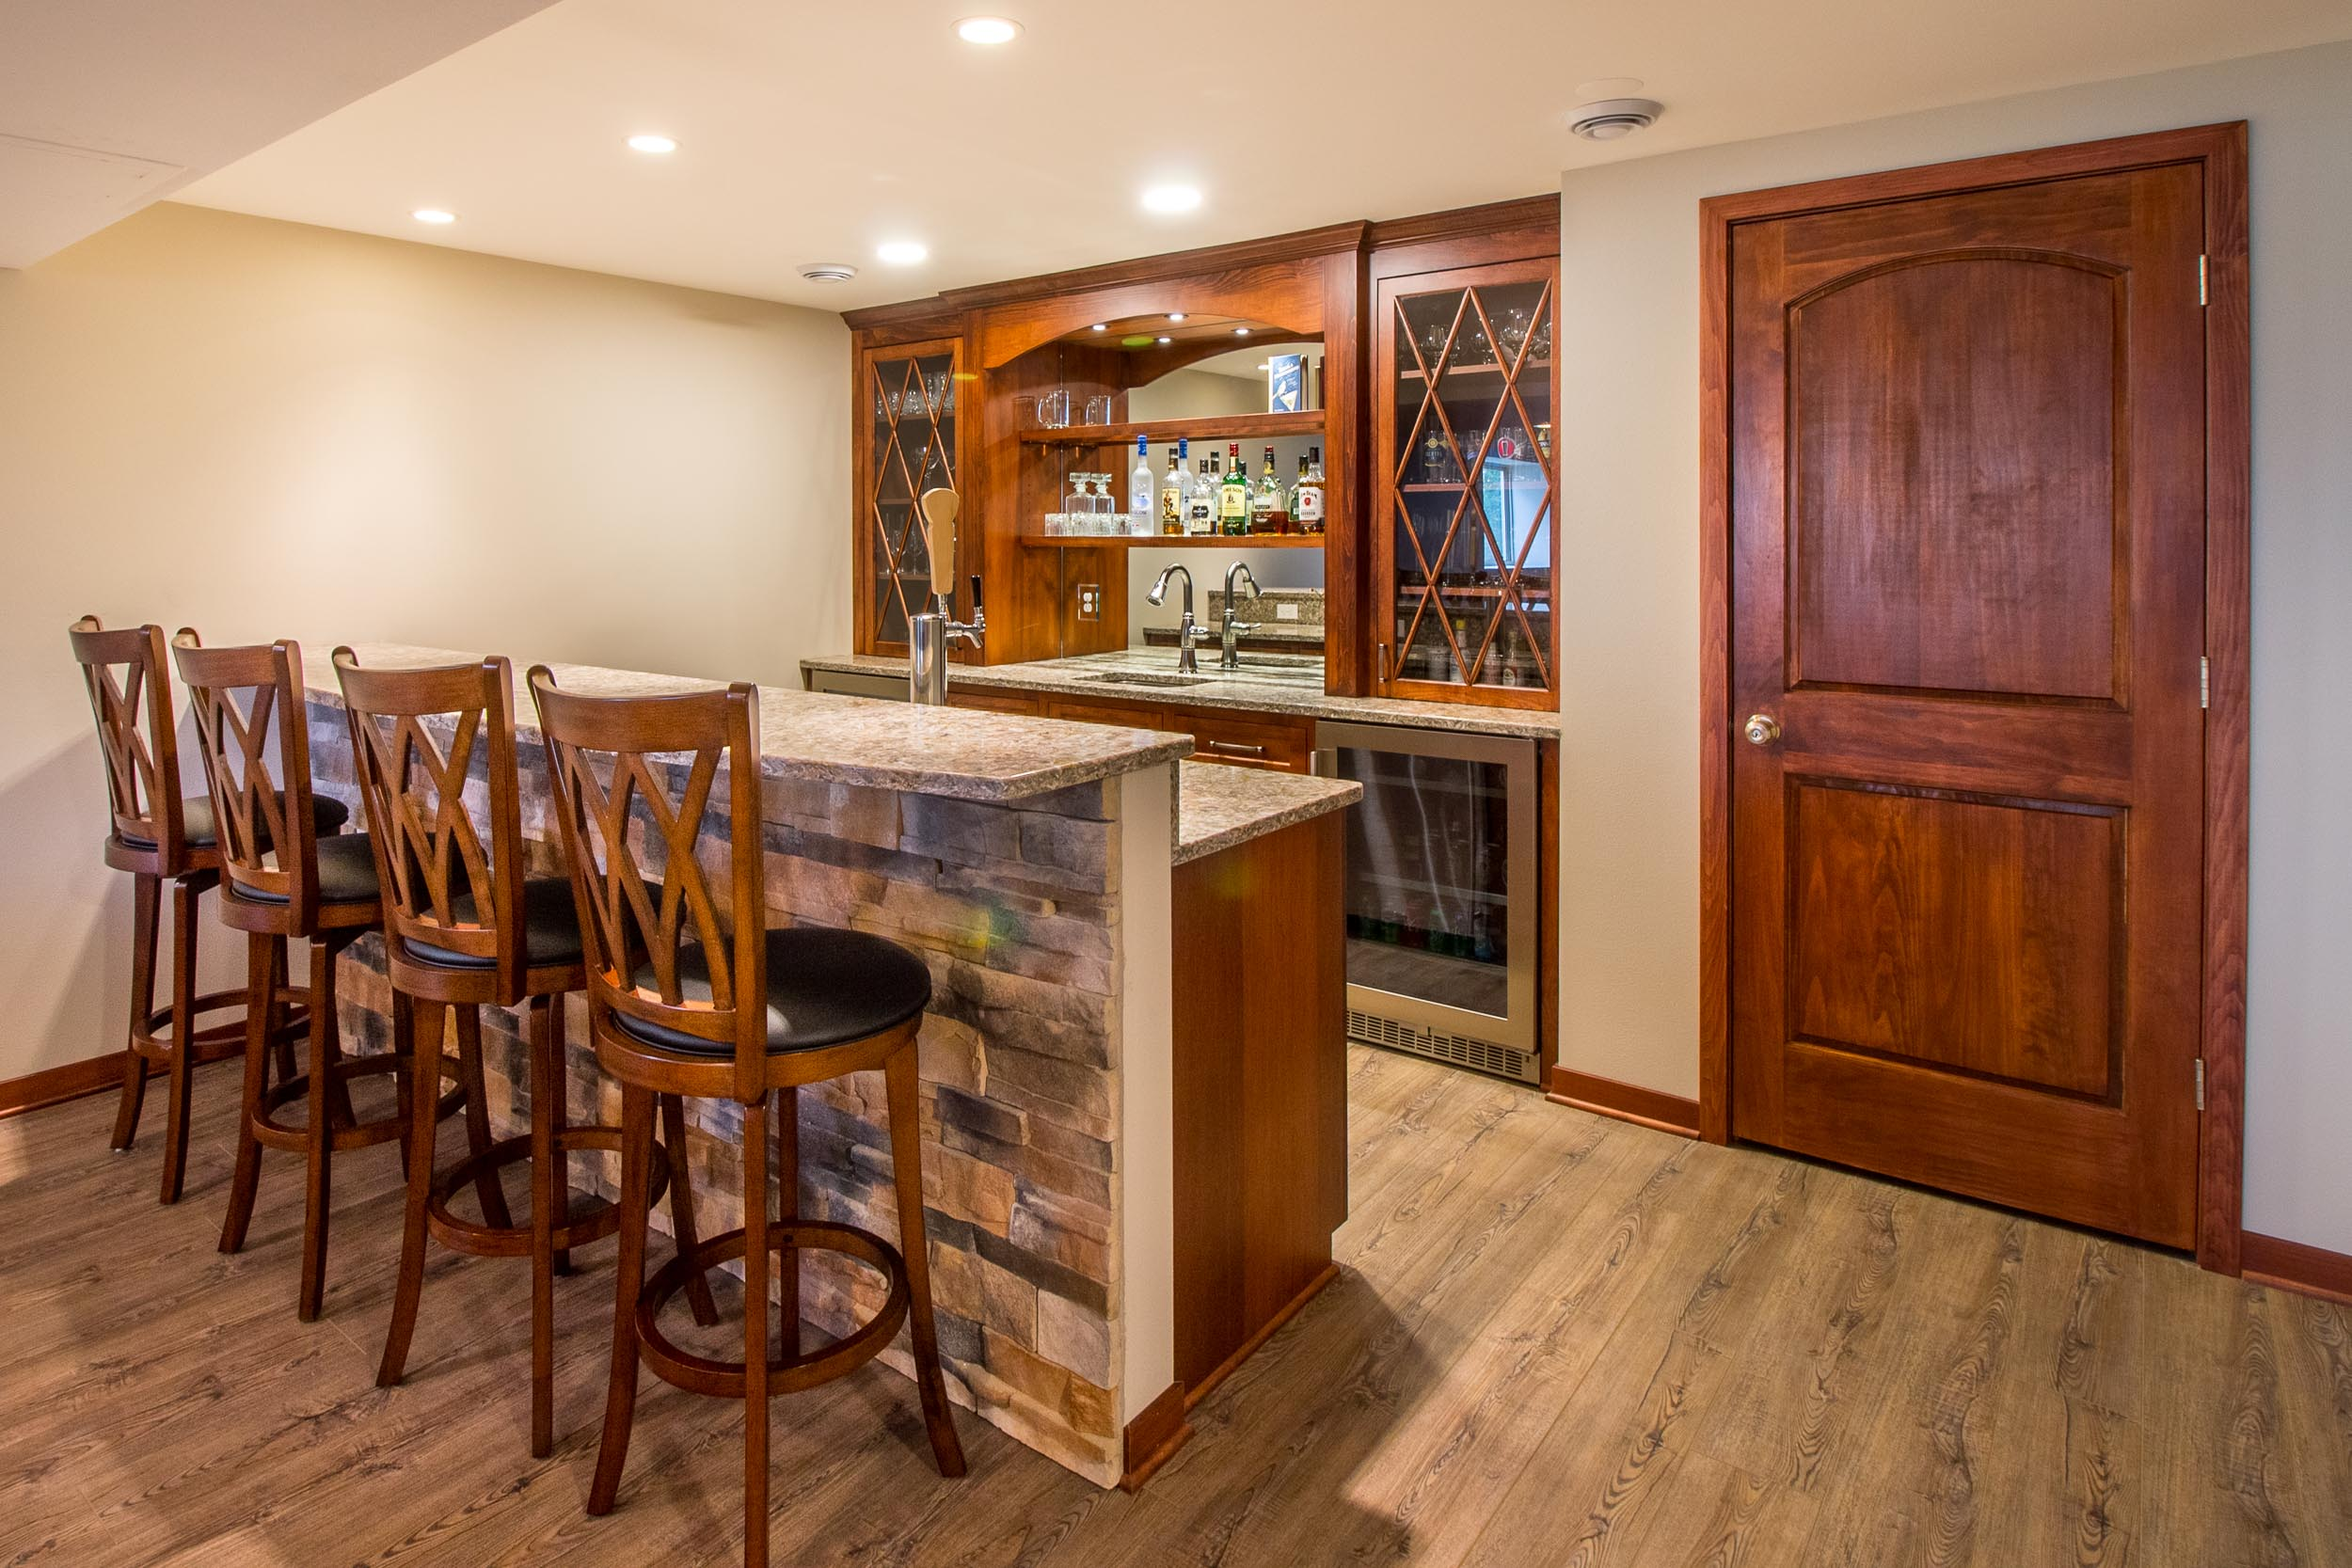 Finished Basement With a Wet Bar